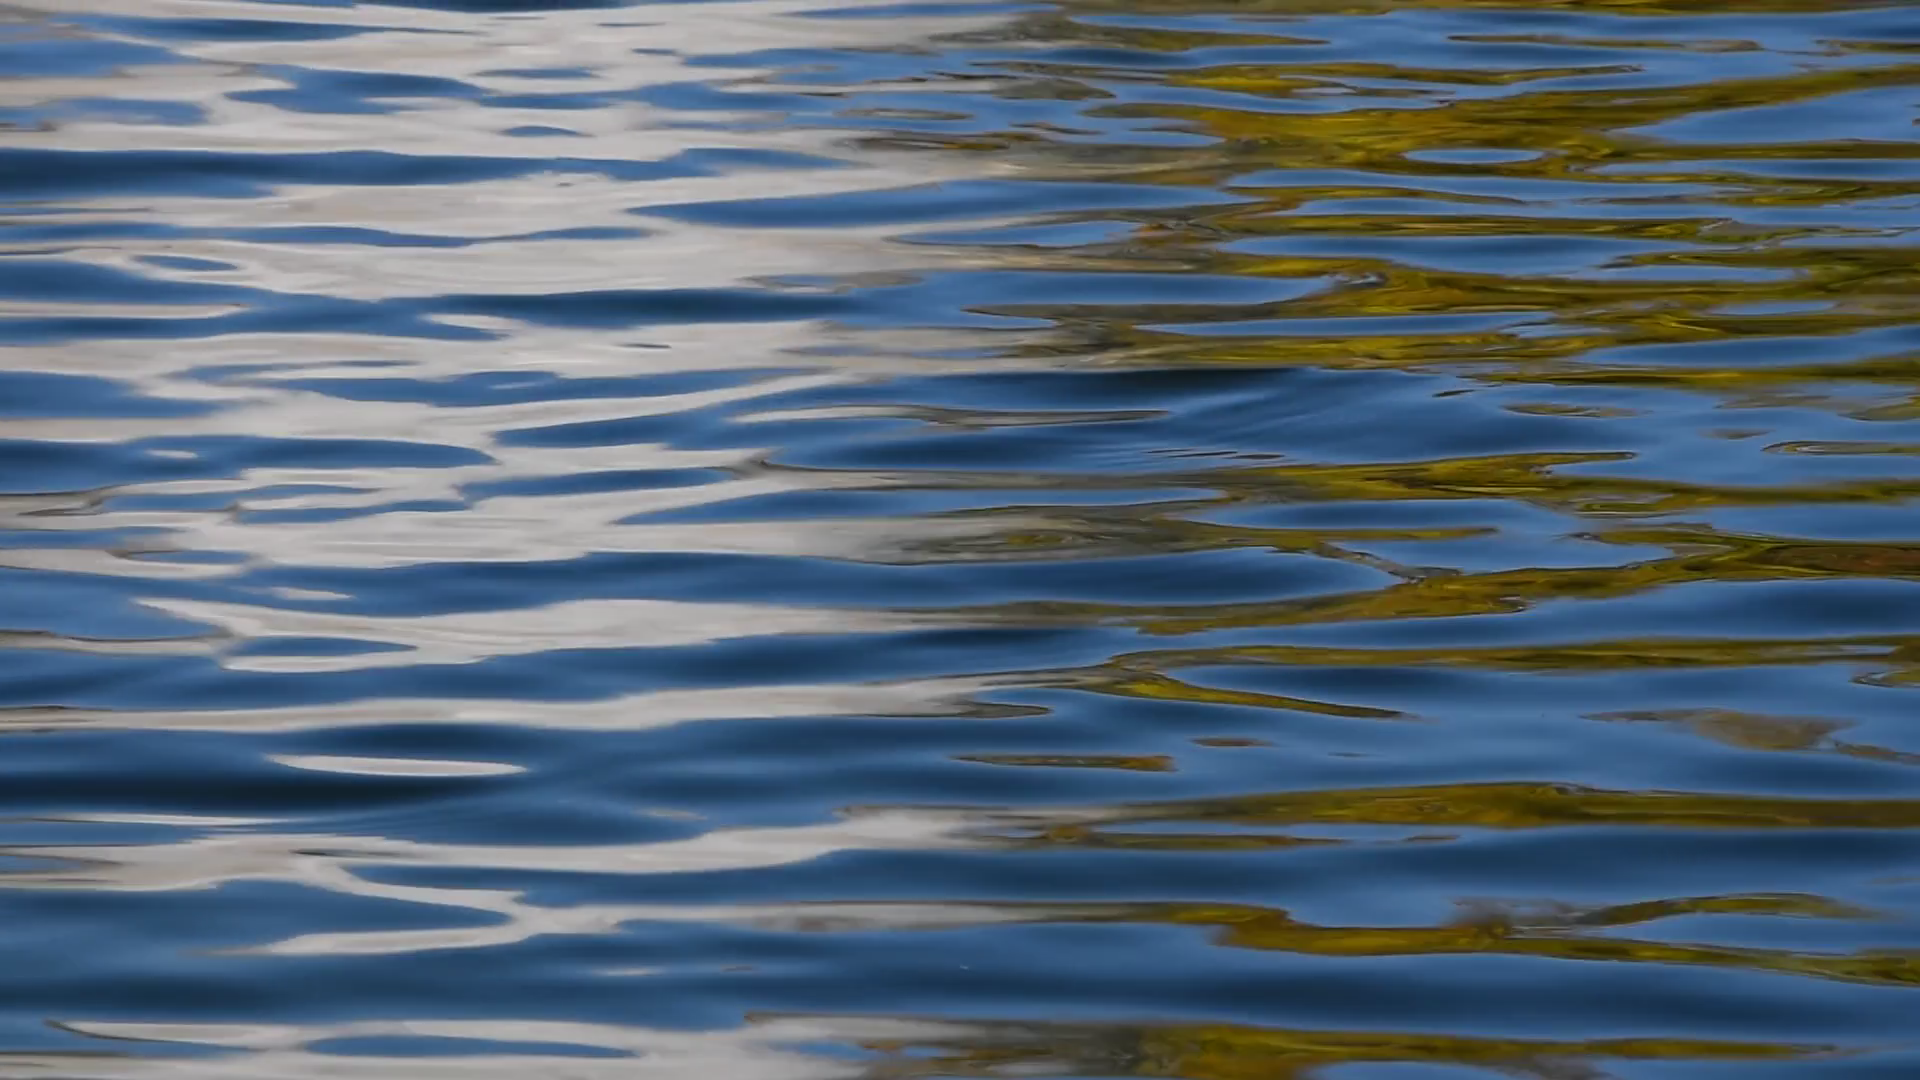 Colorful yellow and blue ripples and waves running on water surface ...